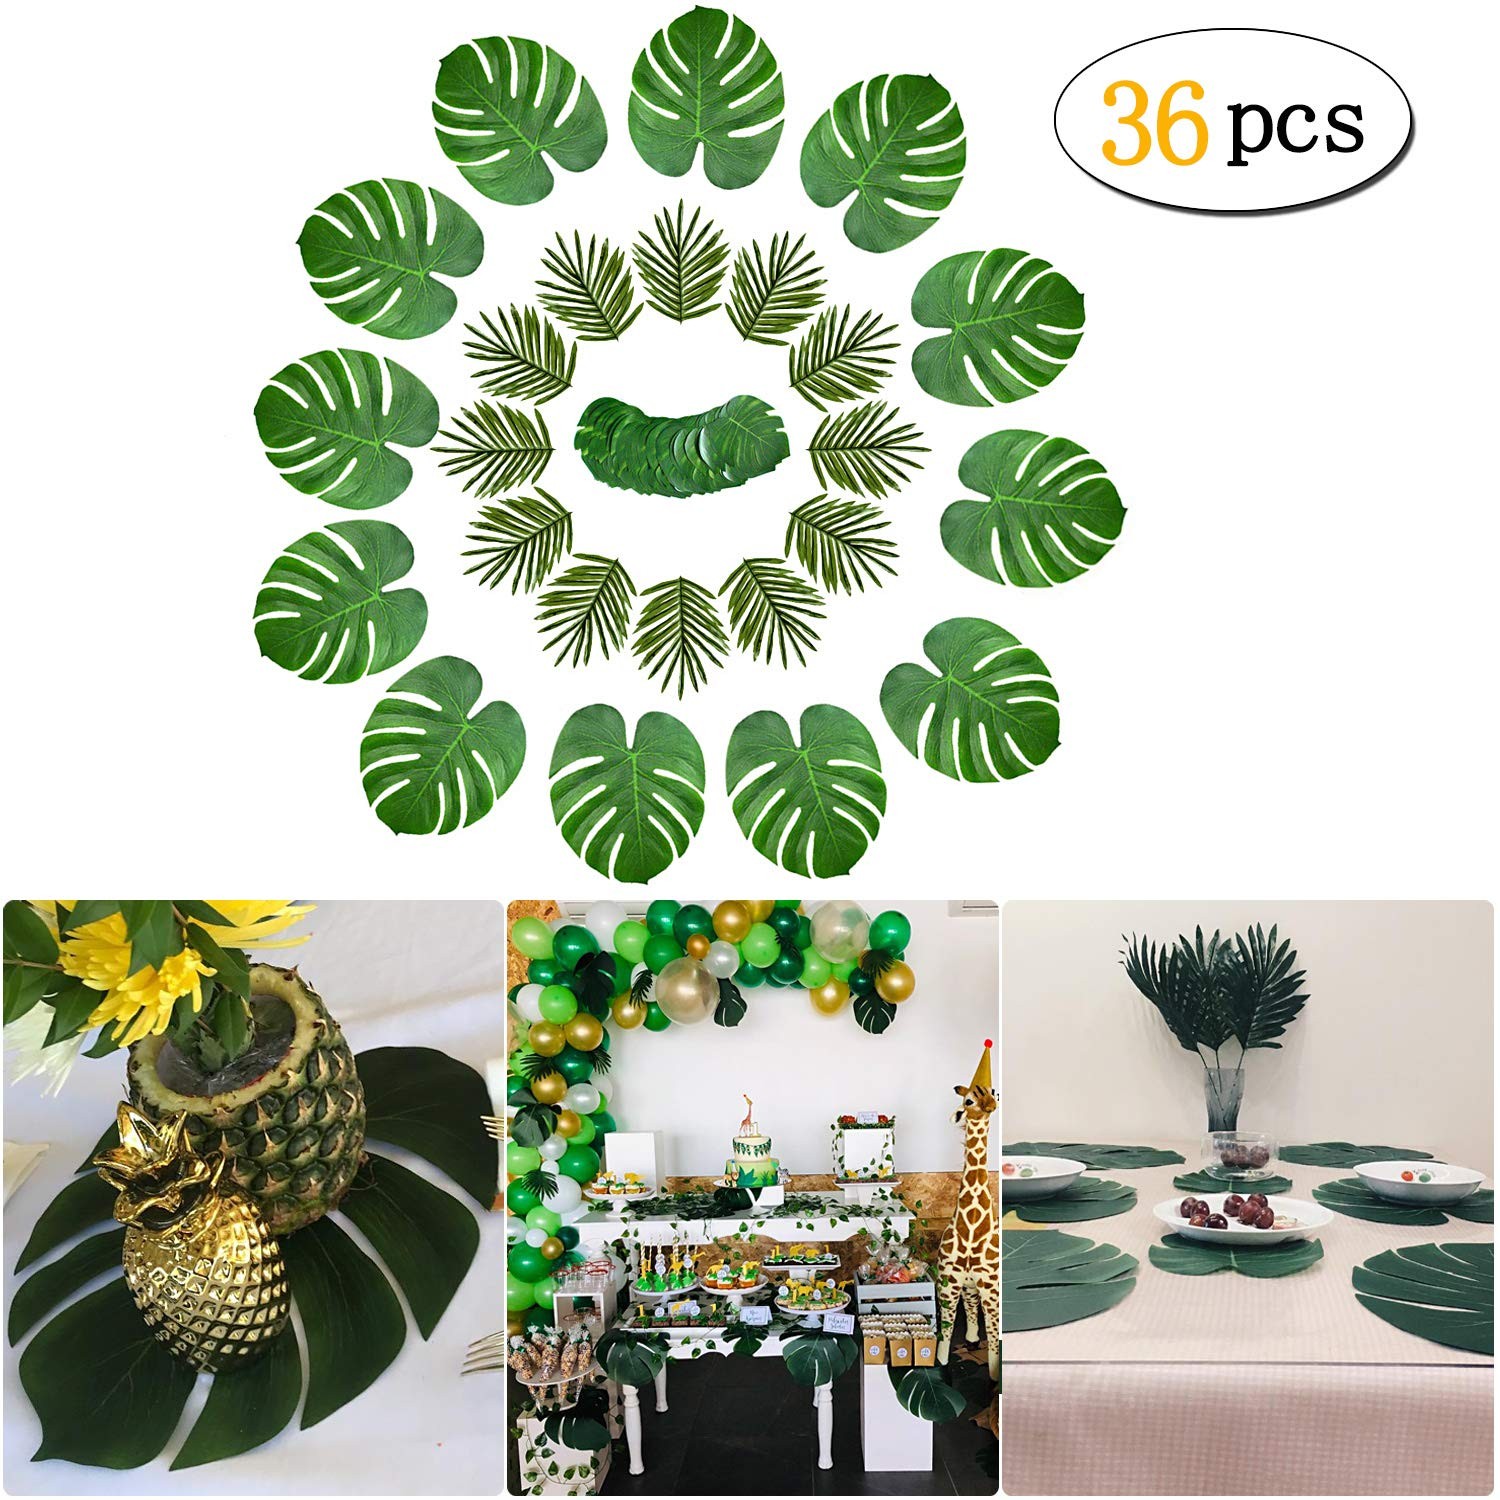 36 Pcs 3 Kinds Tropical Palm Leaves Hawaiian Artificial Green Jungle Leaves Decorations for Hawaiian Tropical Party Decorations,Jungle Luau Theme Supplies,Beach Wedding Party Table Decorations